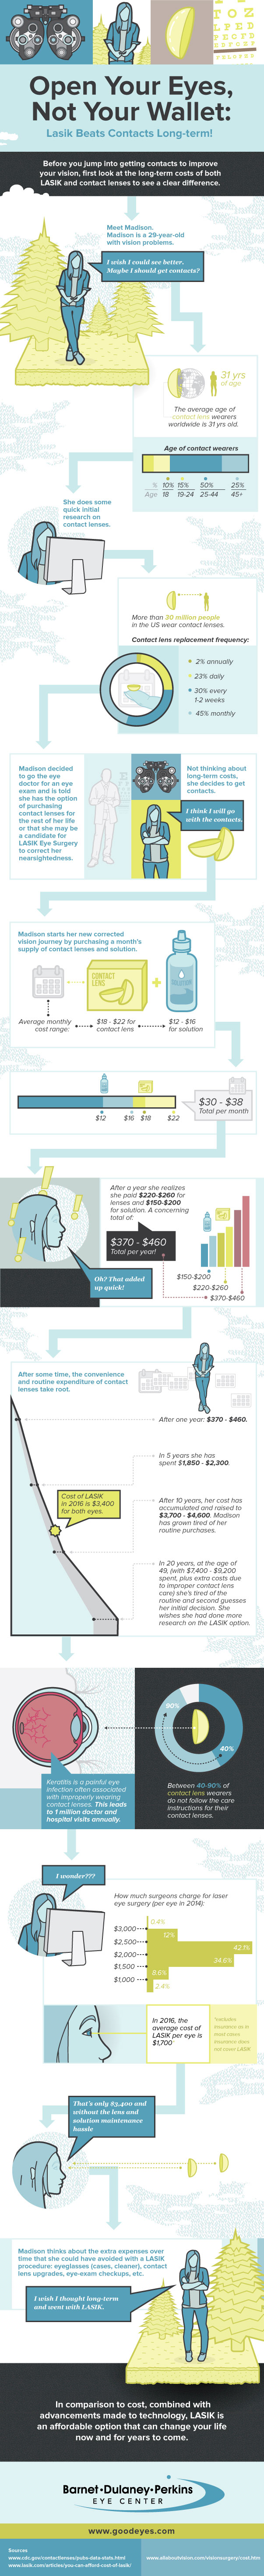 Open-Your-Eyes-Not-Your-Wallet-LASIK-Beats-Contacts-Long-term-infographic-plaza